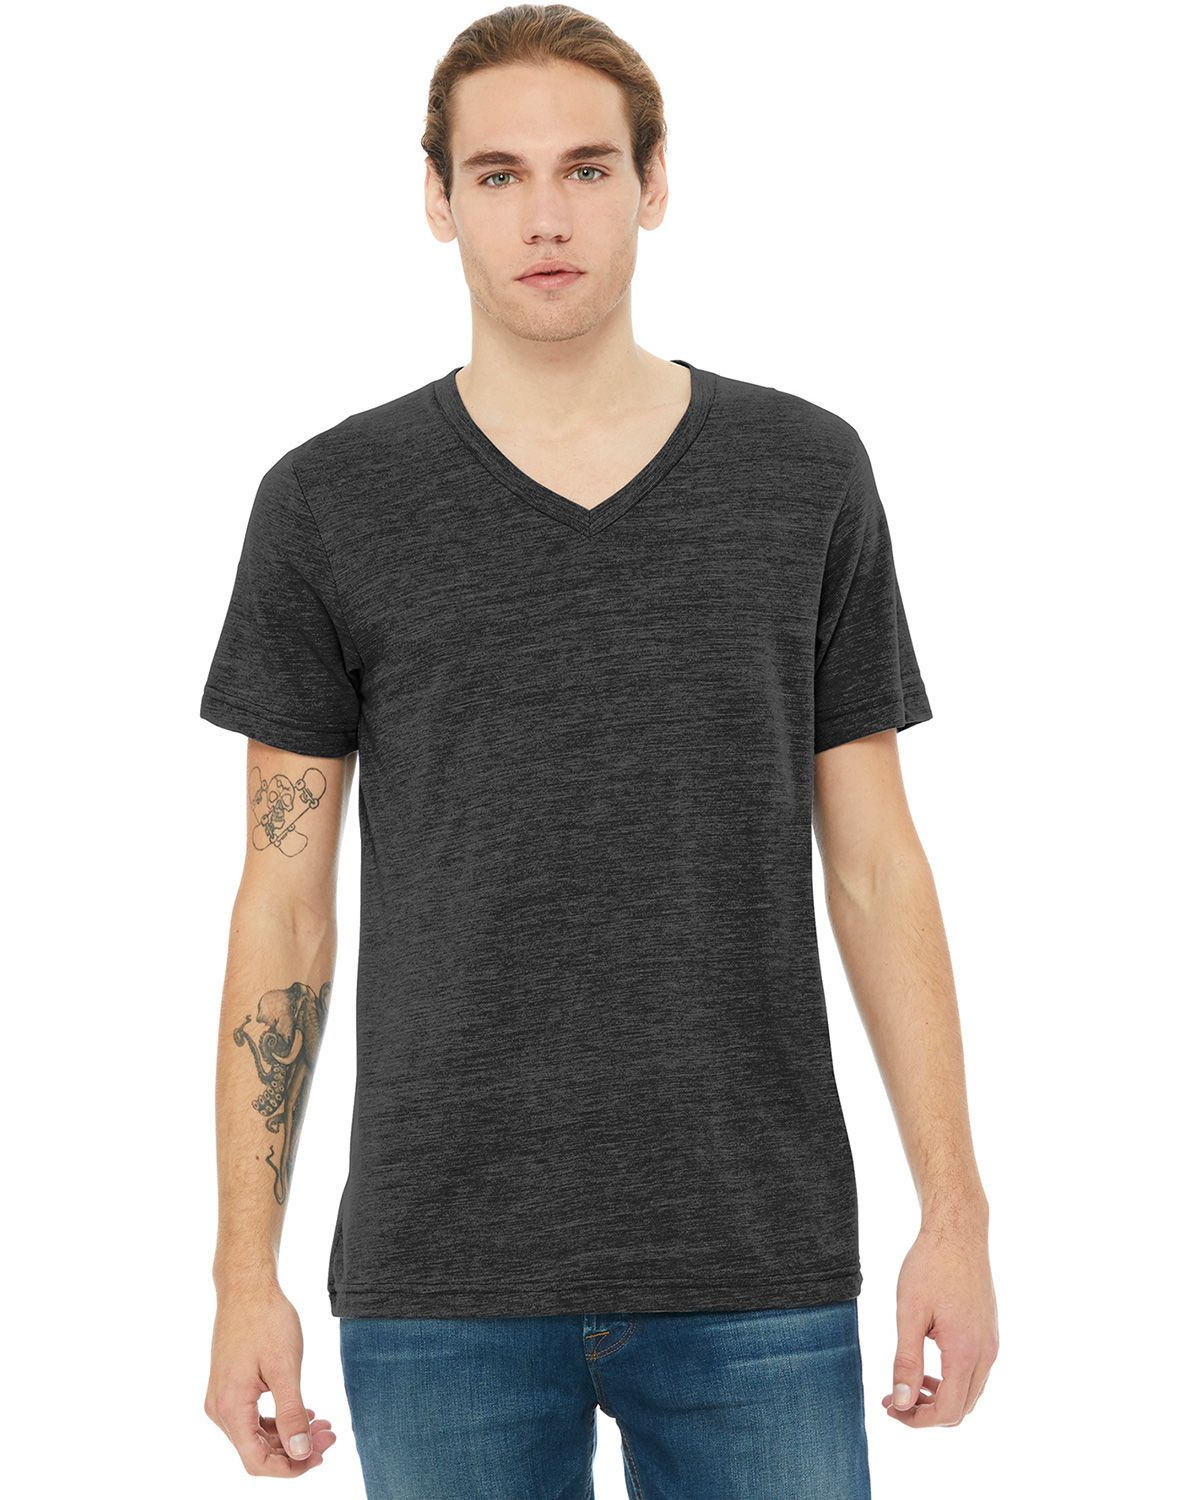 Bella + Canvas BC3005 Short Sleeve V-Neck Tee Jersey Unisex Tee - Charcoal Black Slub - XS from Bella + Canvas